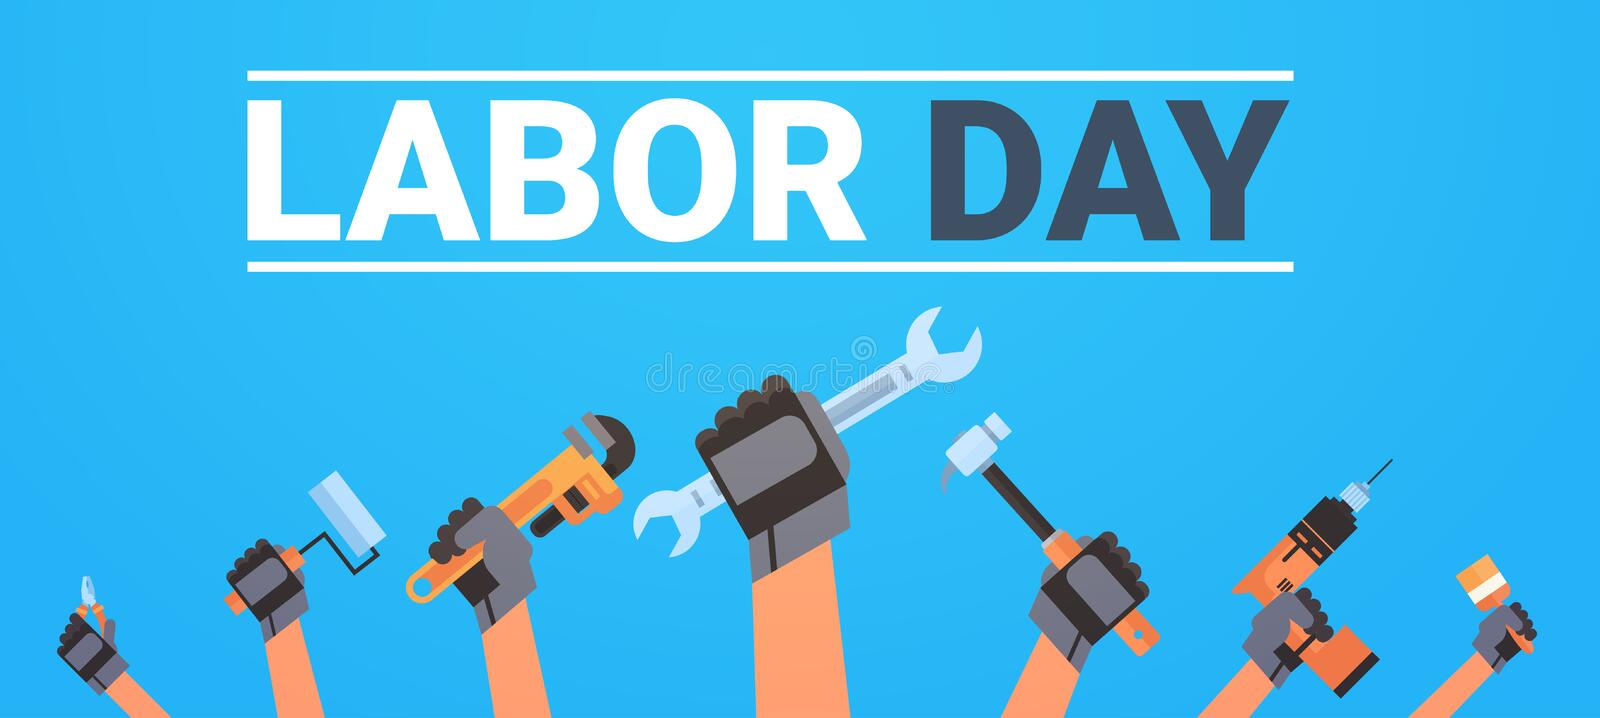 Labor Day Poster With Hands Holding Different Instruments Background Workers Holiday Banner Design stock illustration